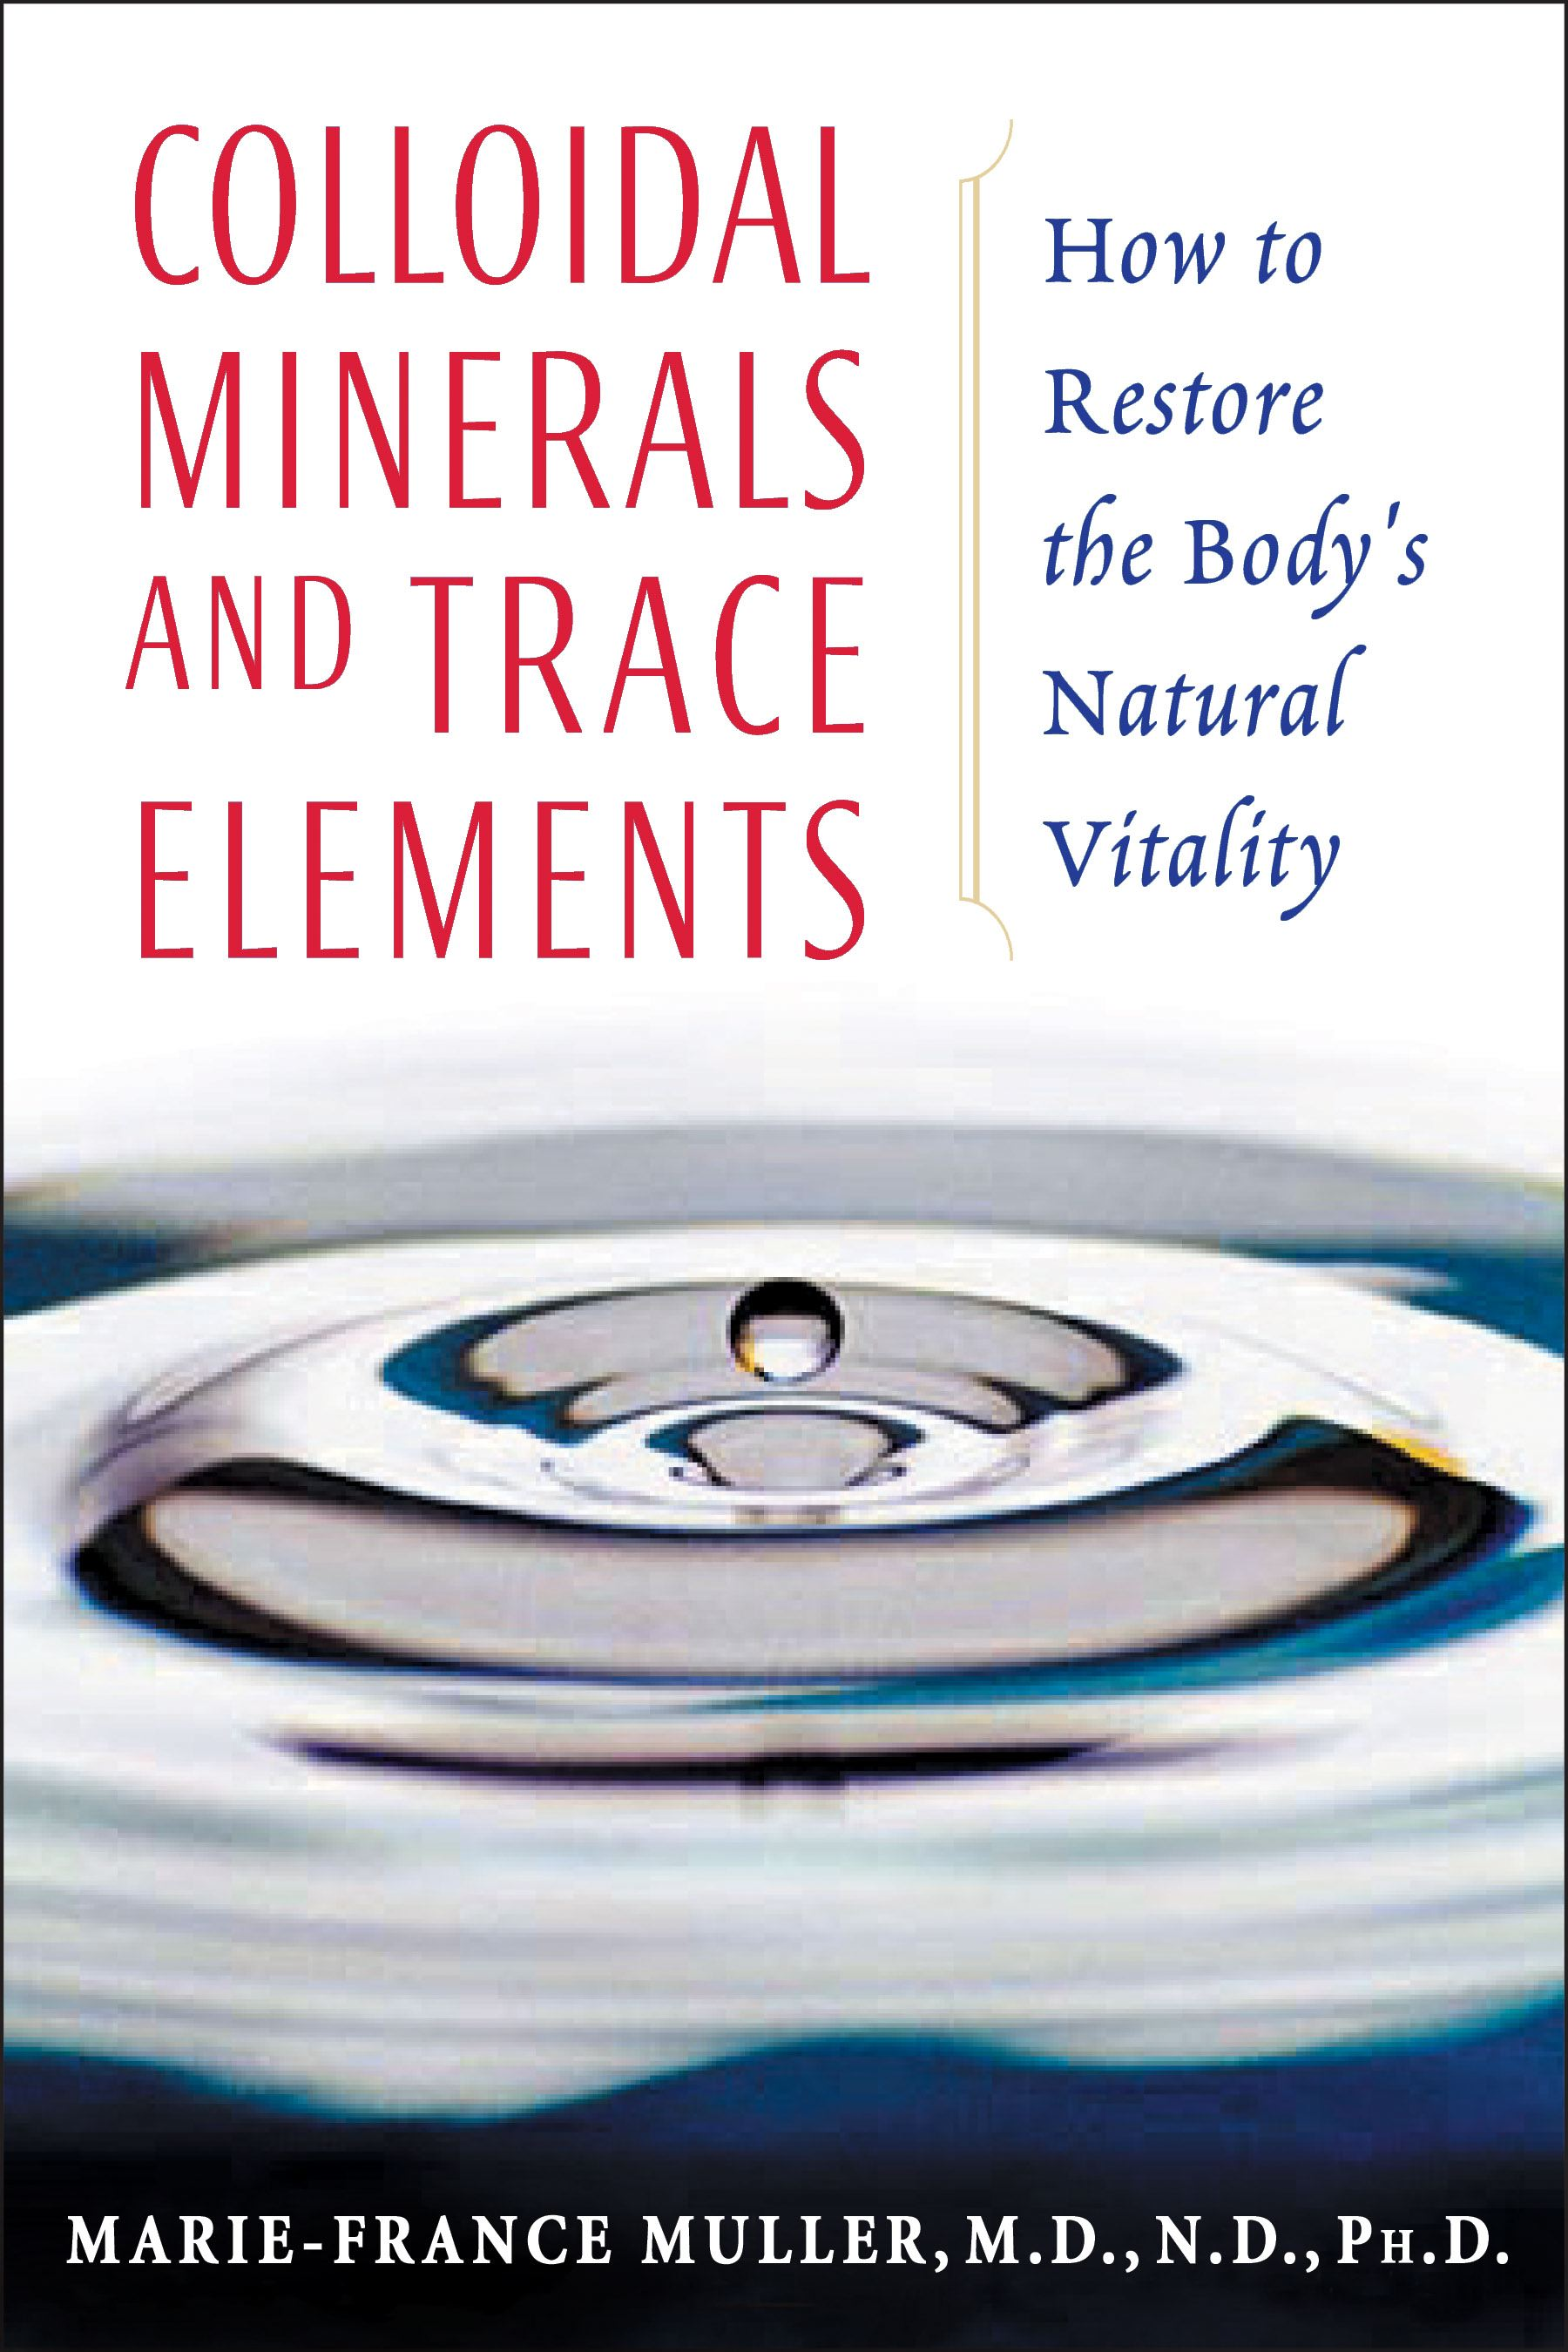 Colloidal-minerals-and-trace-elements-9781594770234_hr